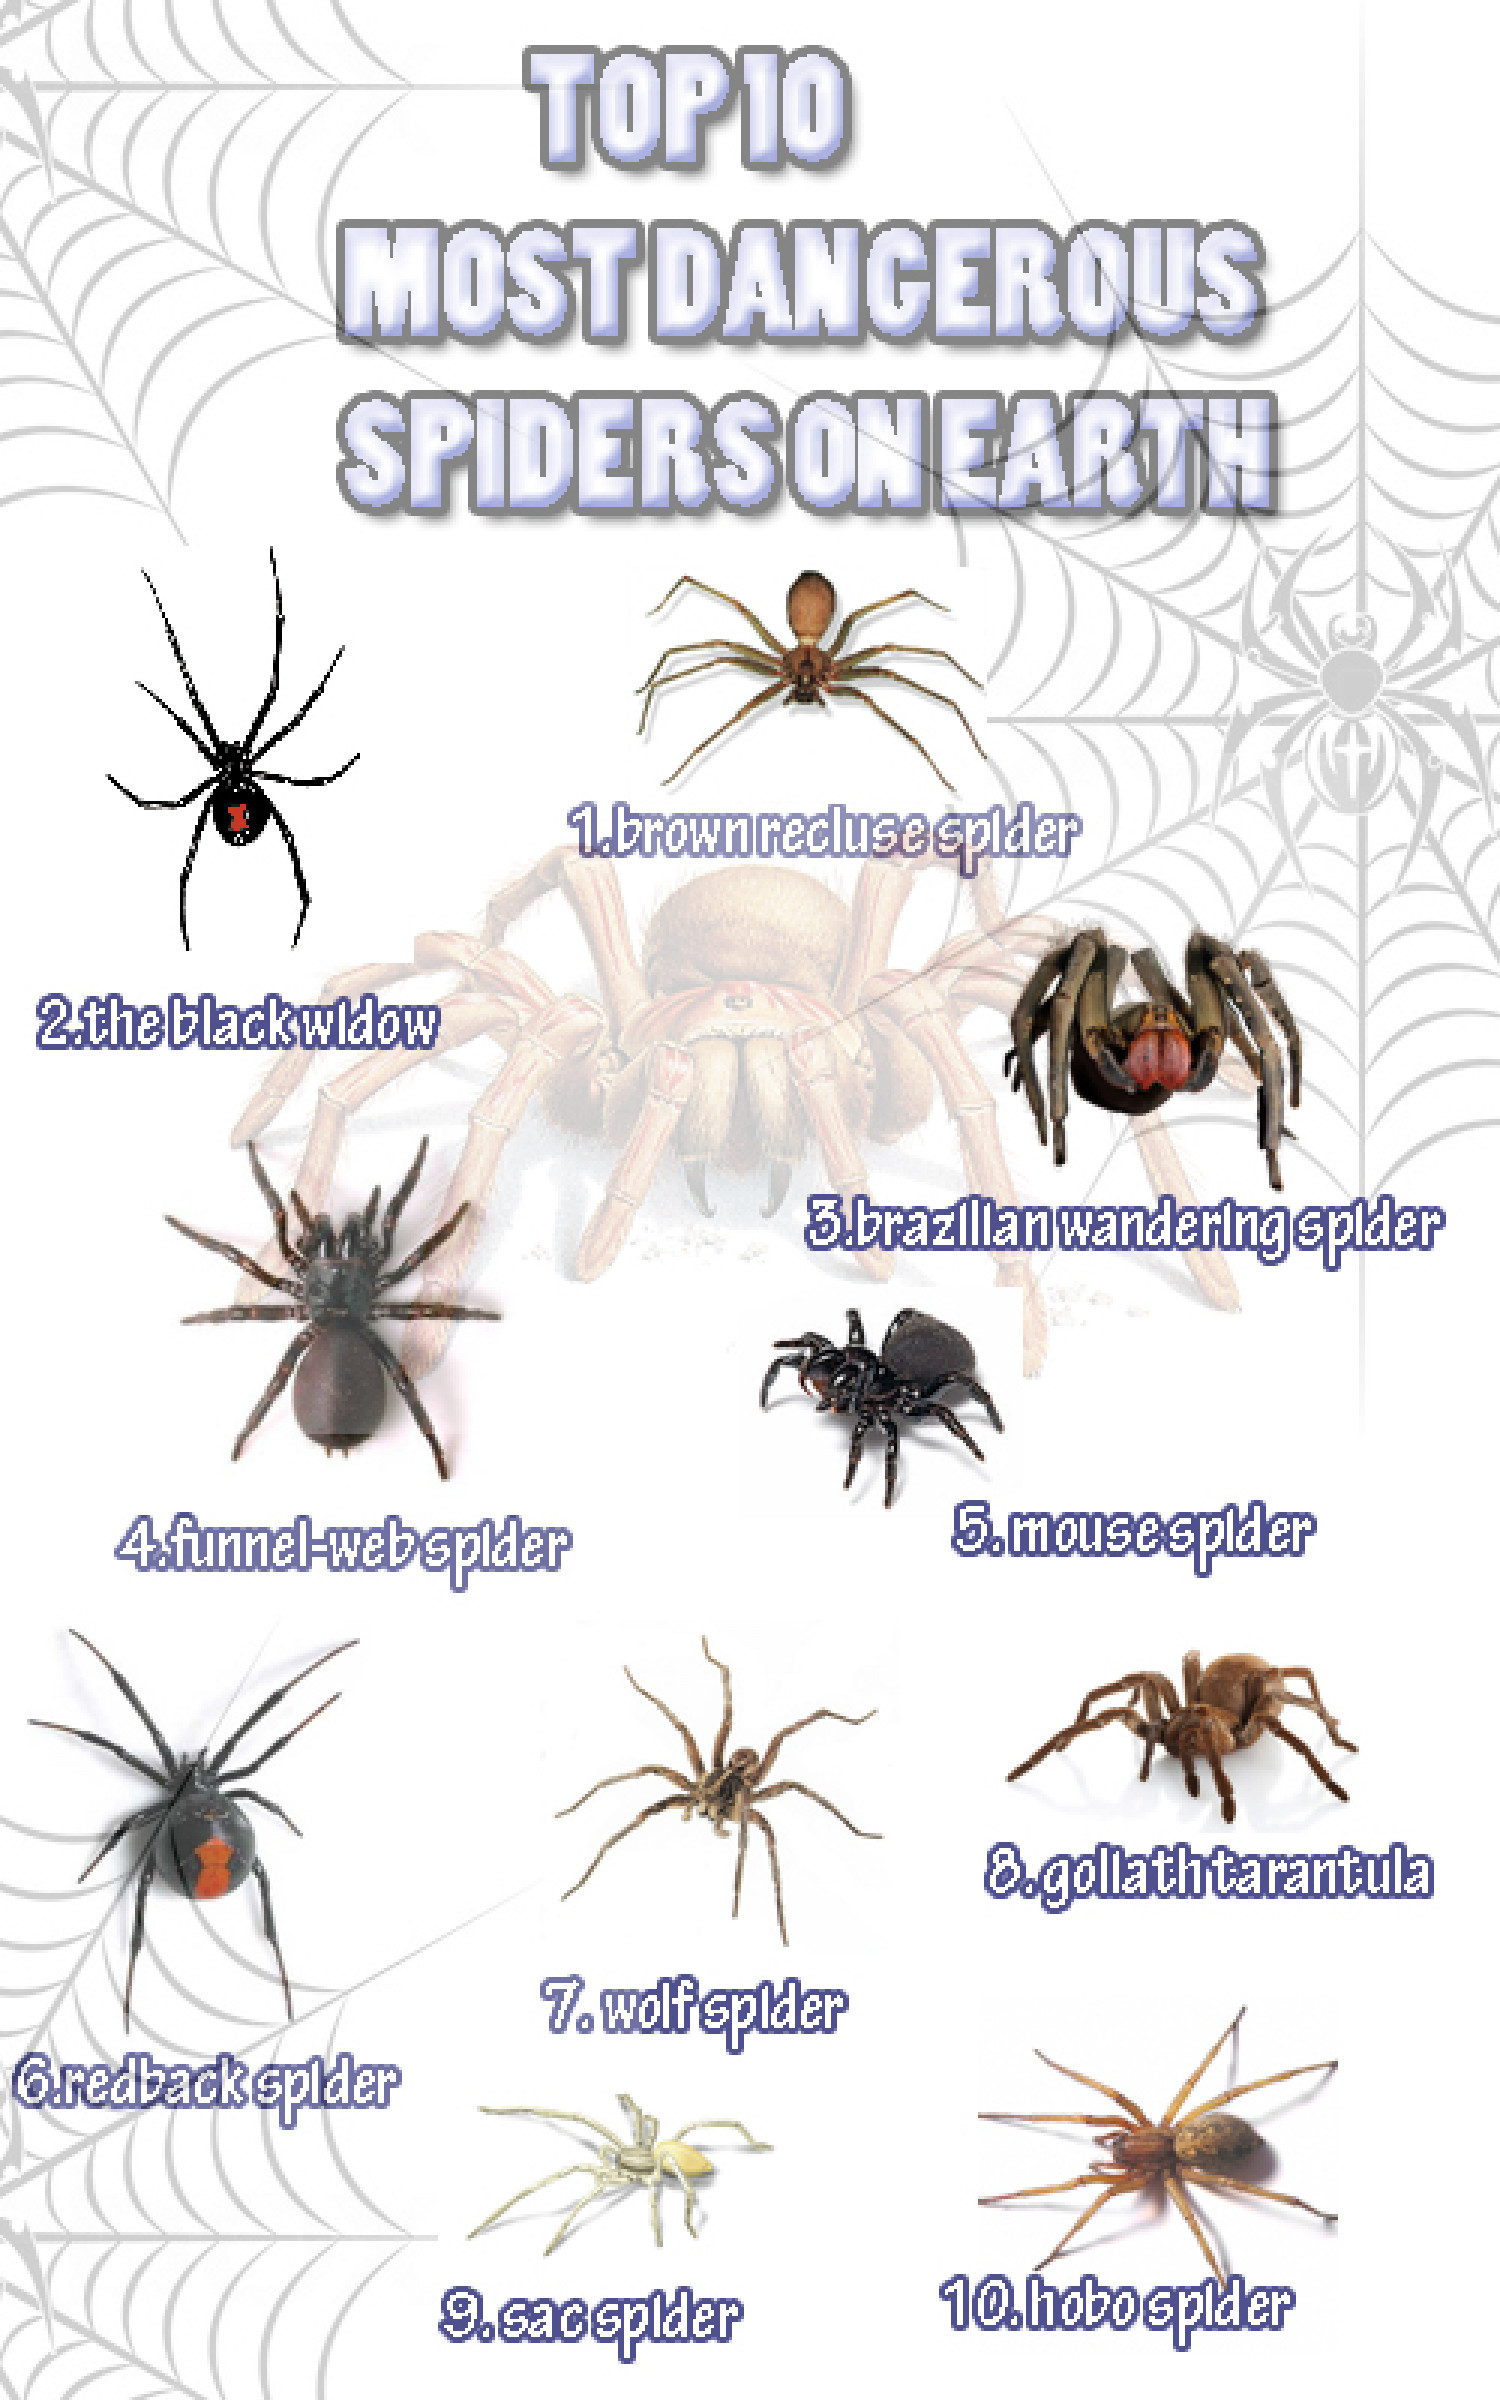 Top 10 Most Dangerous Spiders On Earth Infographic